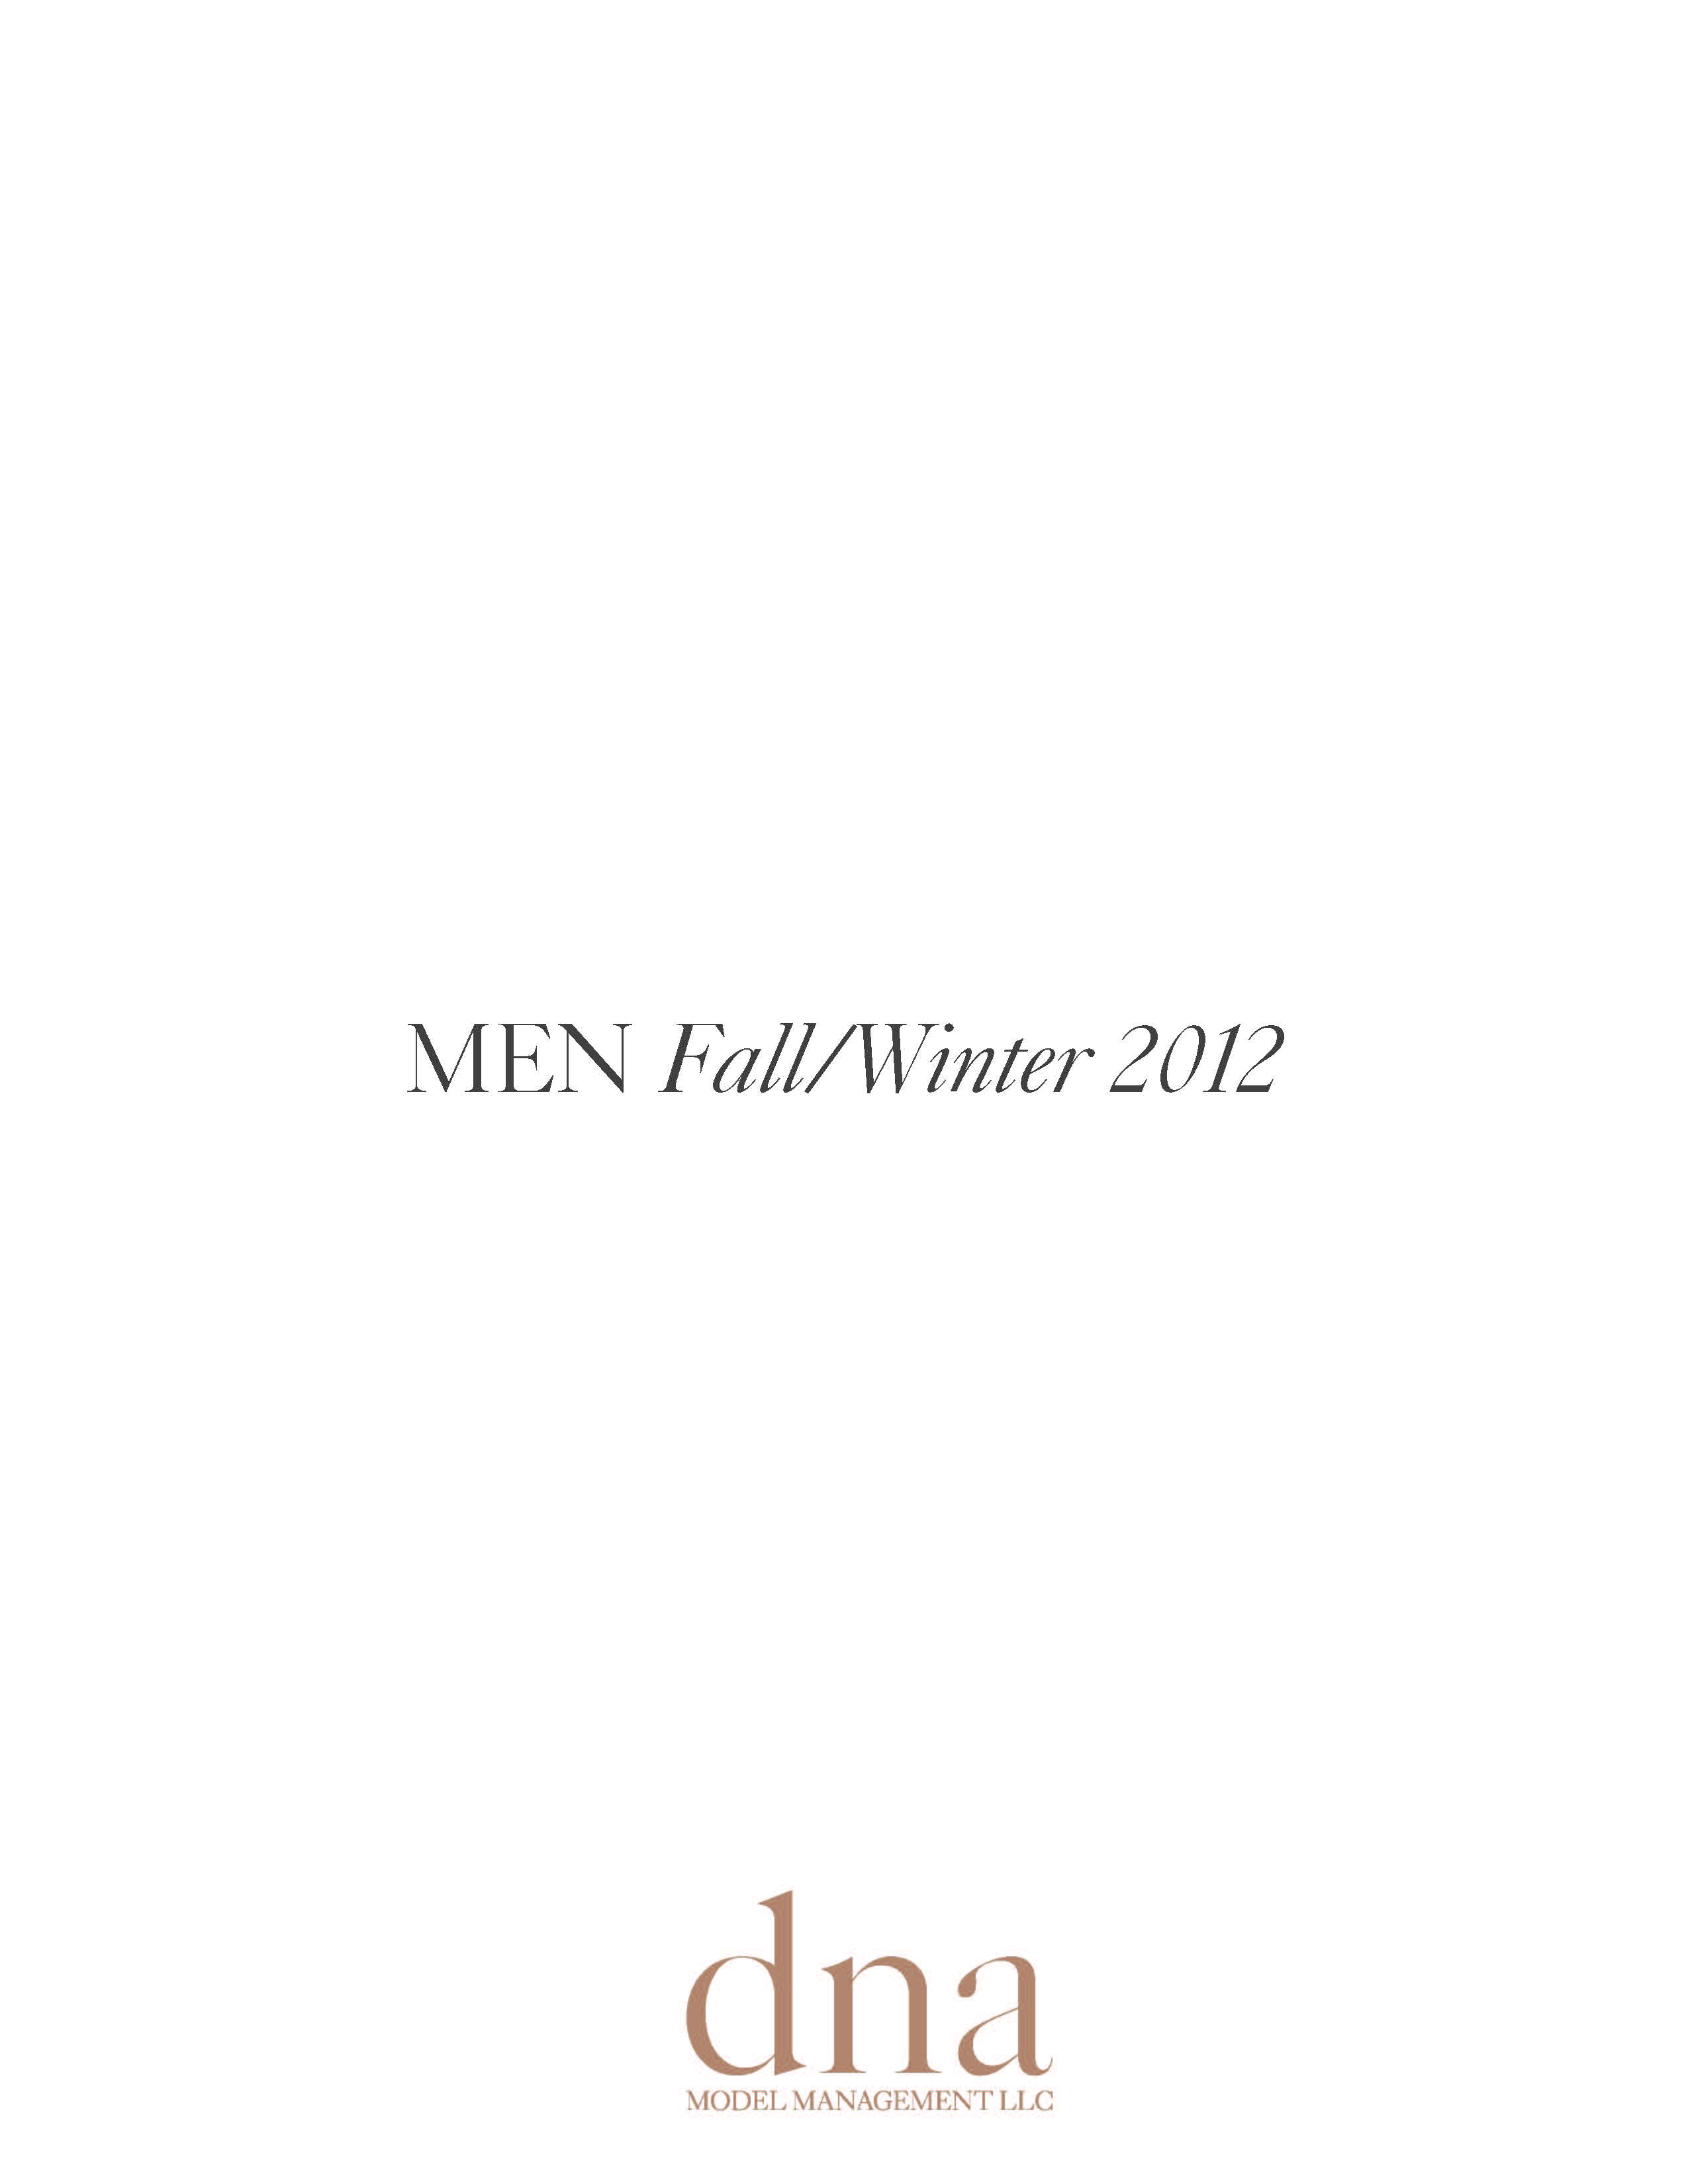 DNA Fall/Winter 2012 Show Package